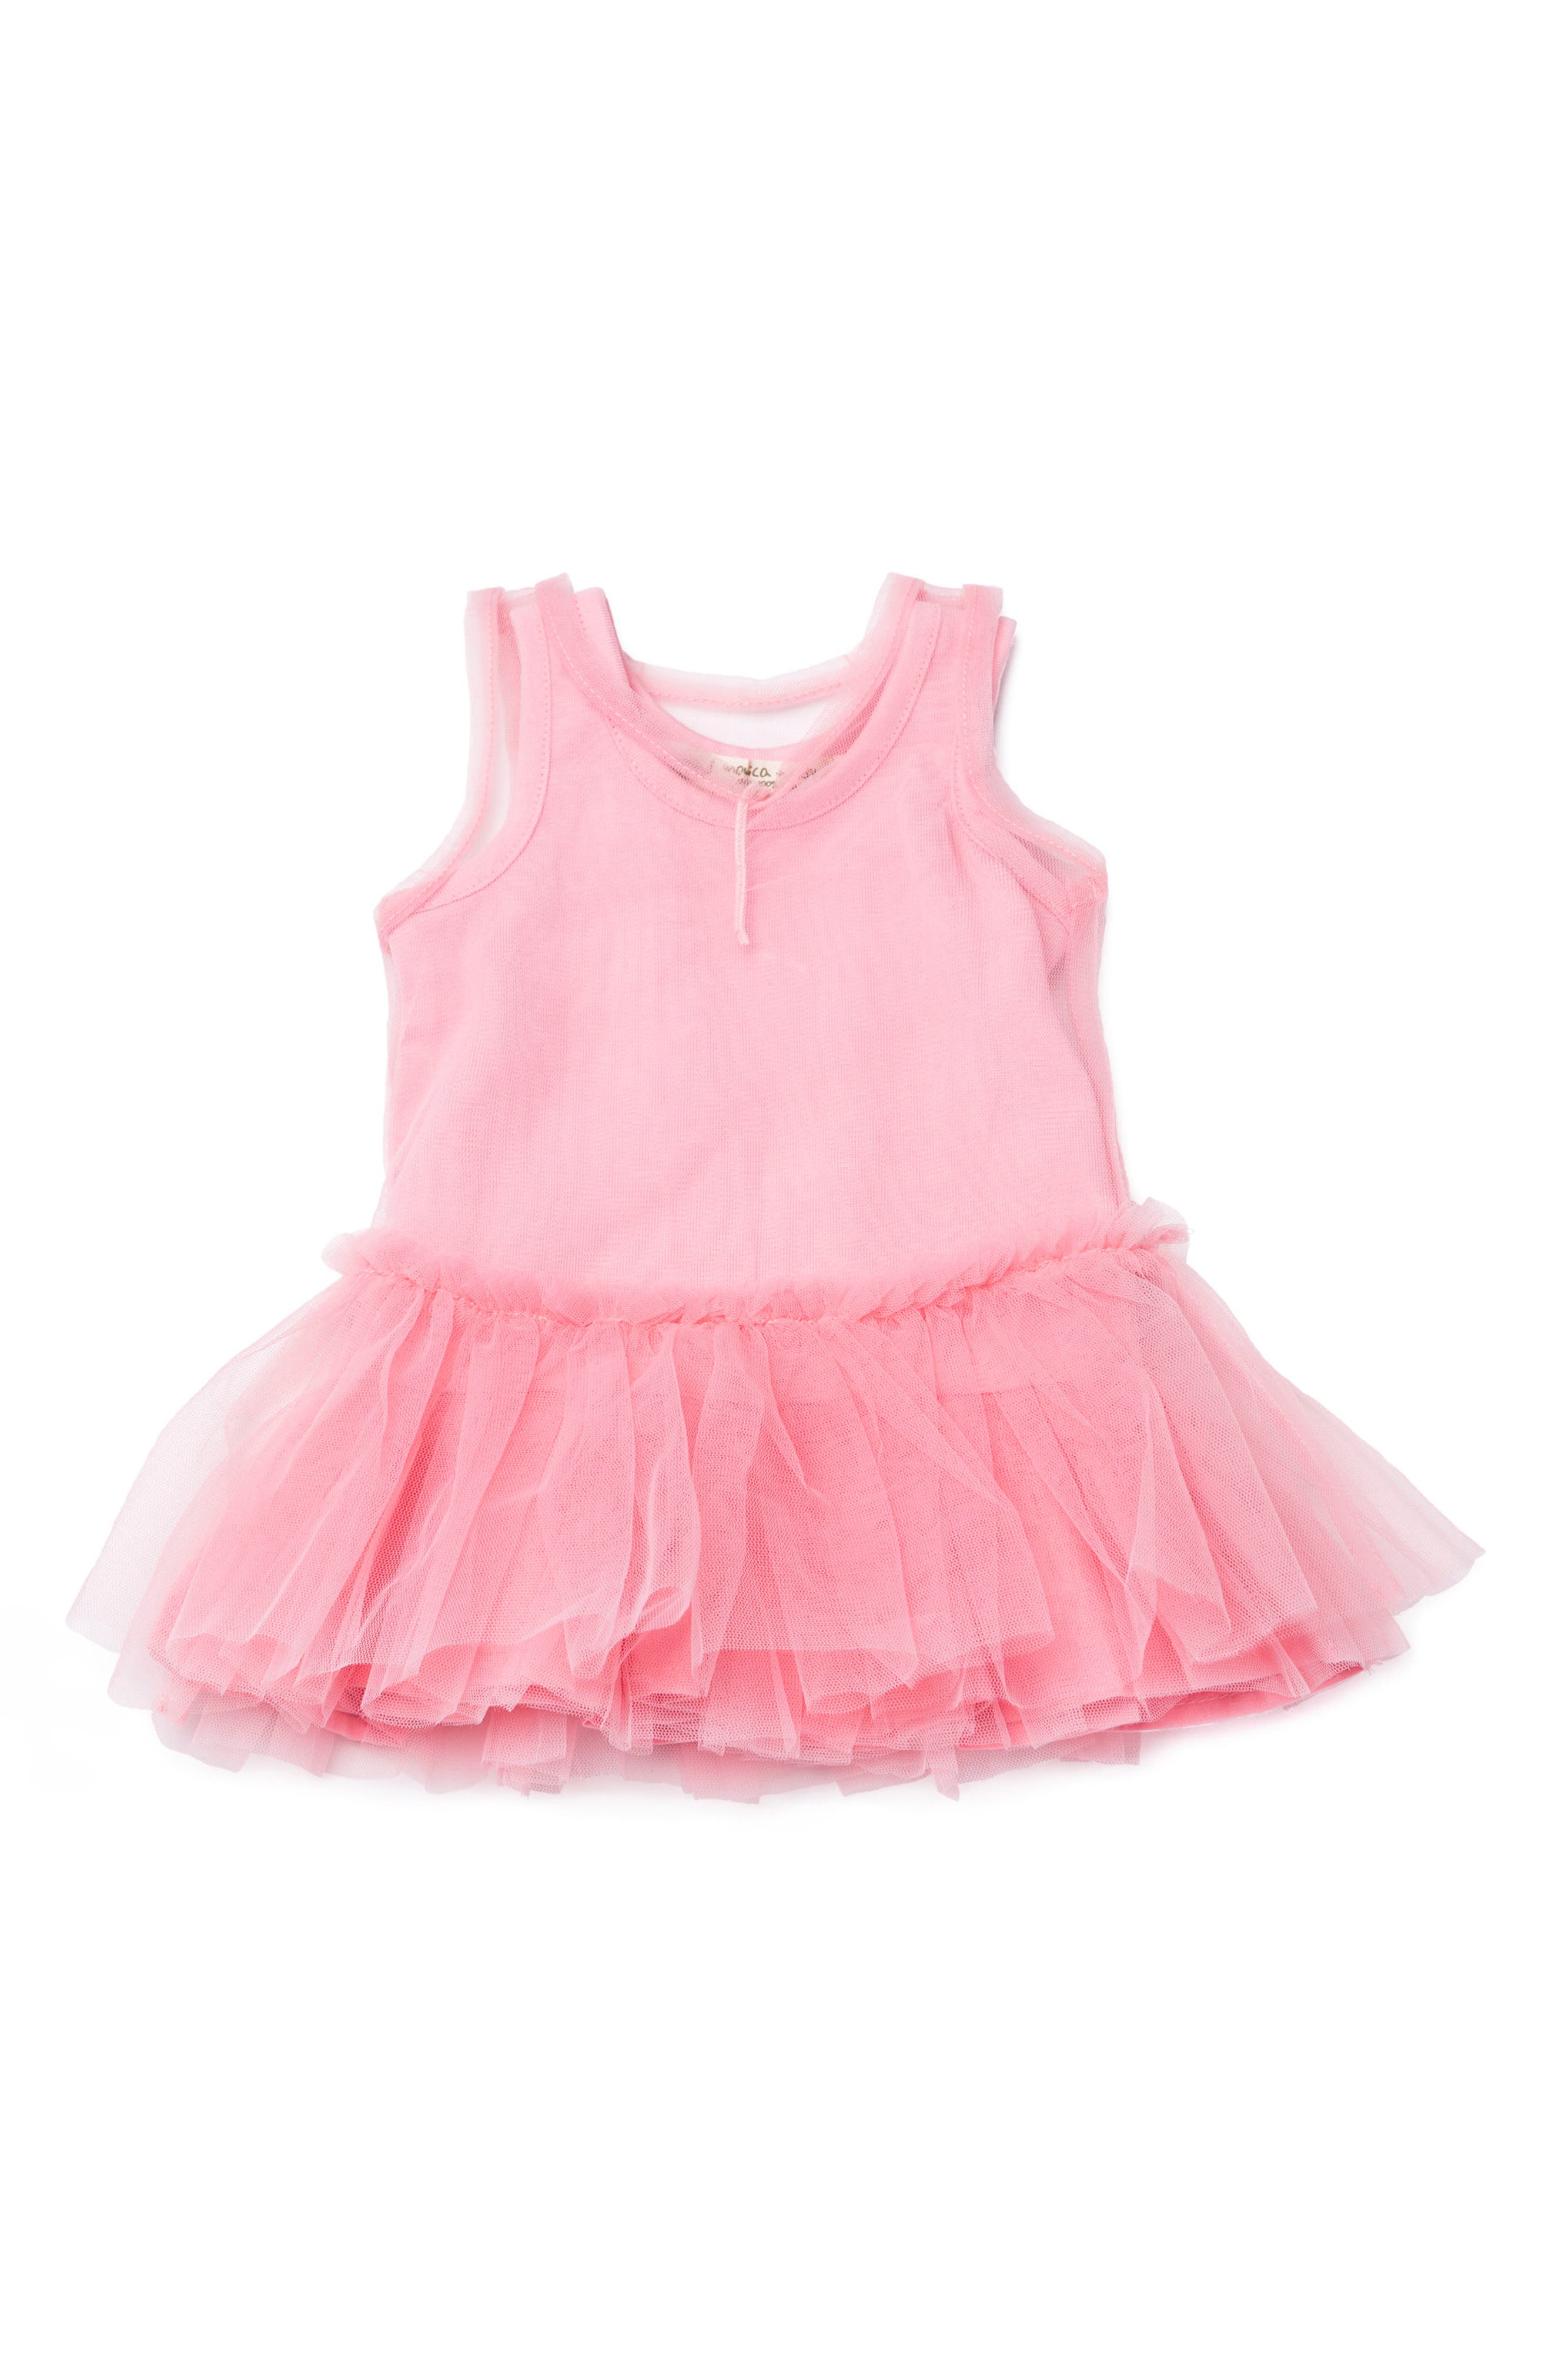 Main Image - Monica + Andy Little Belle Organic Cotton & Tulle Dress (Baby Girls)